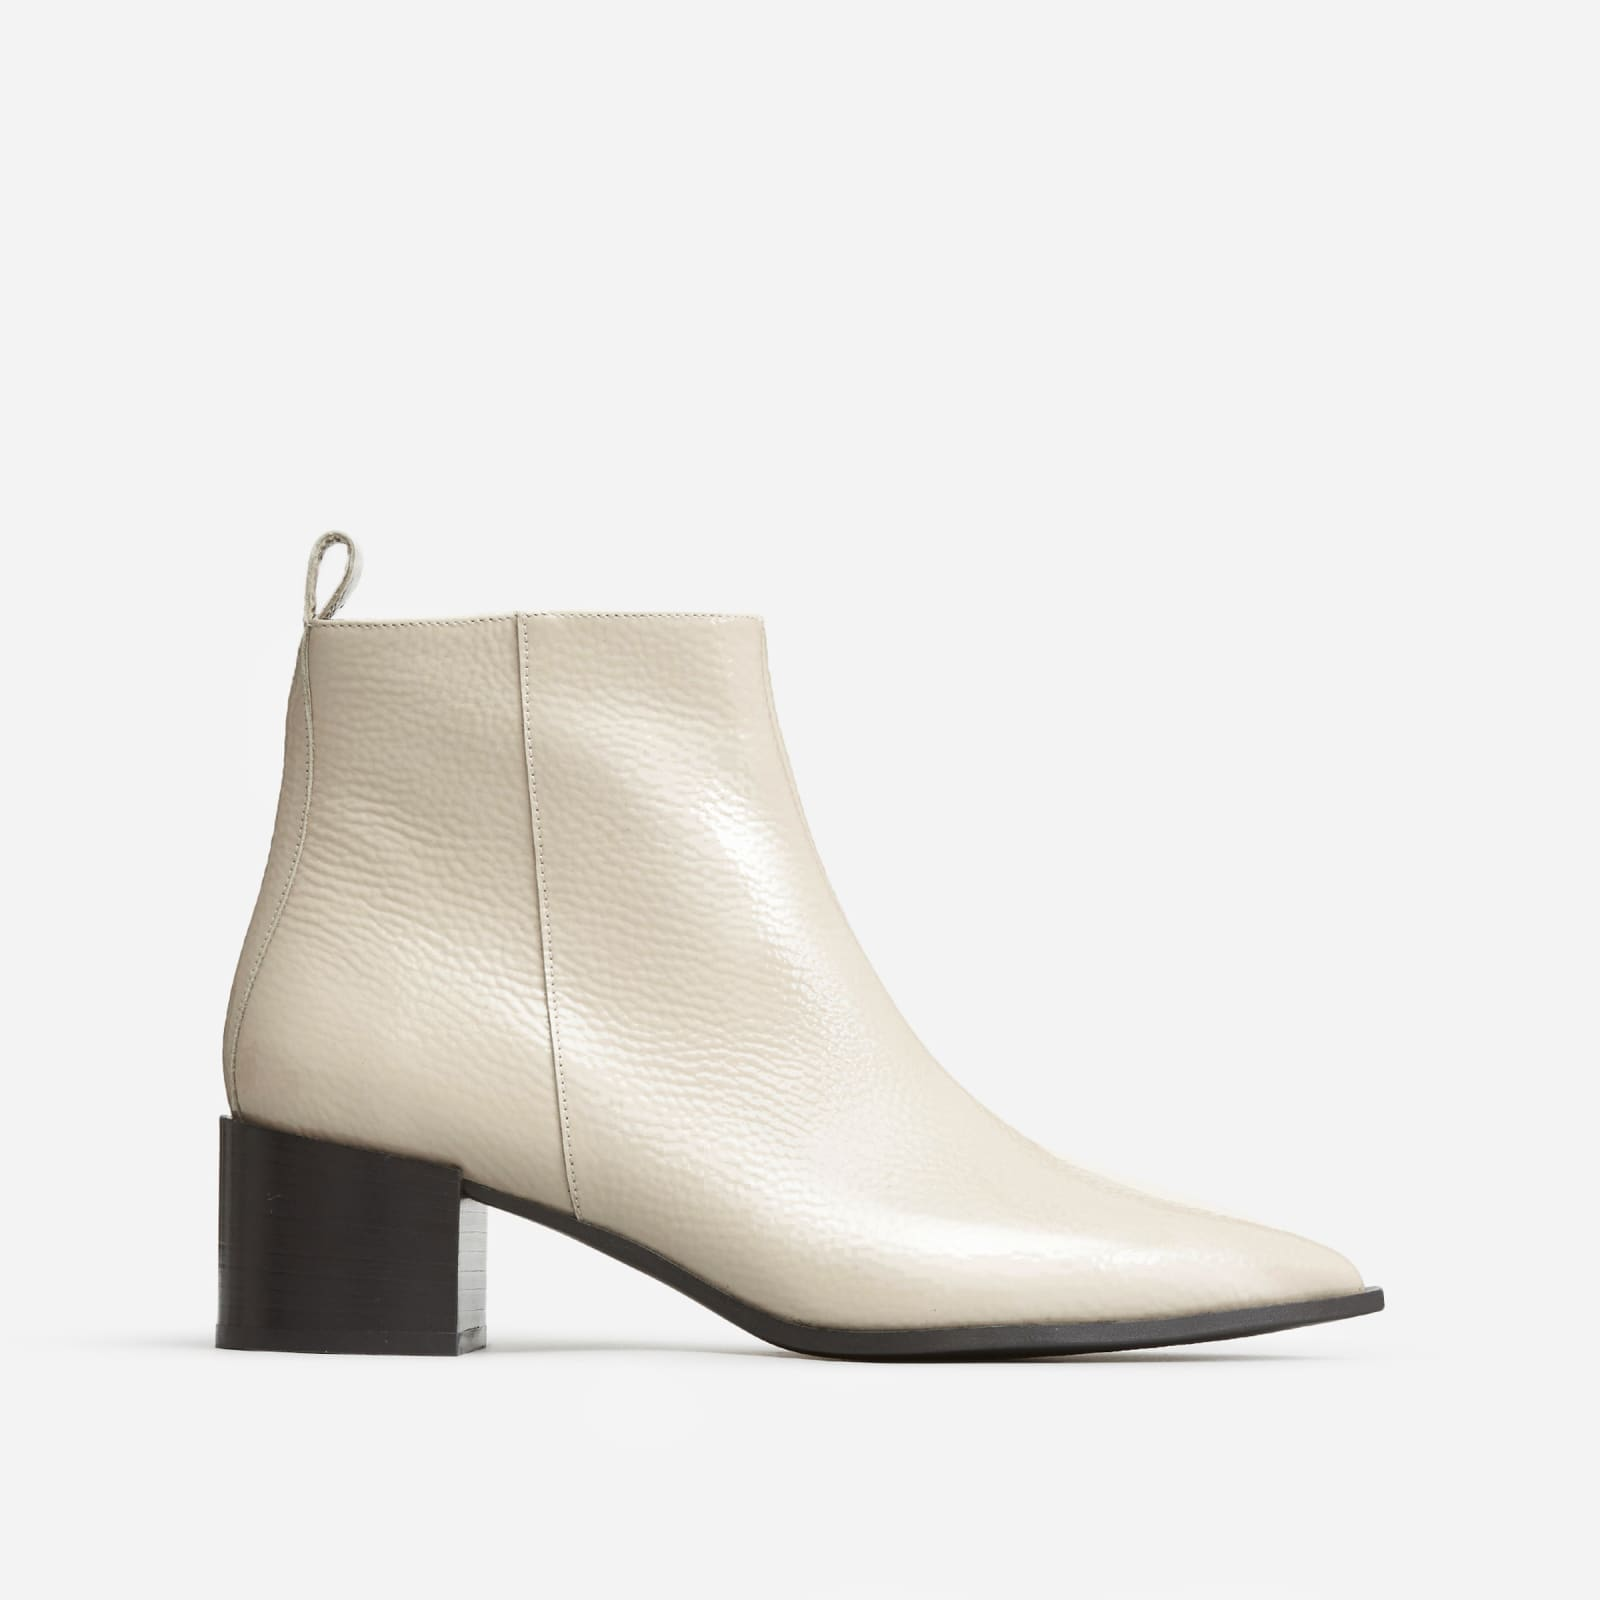 boss boot by everlane in bone patent, size 6.5